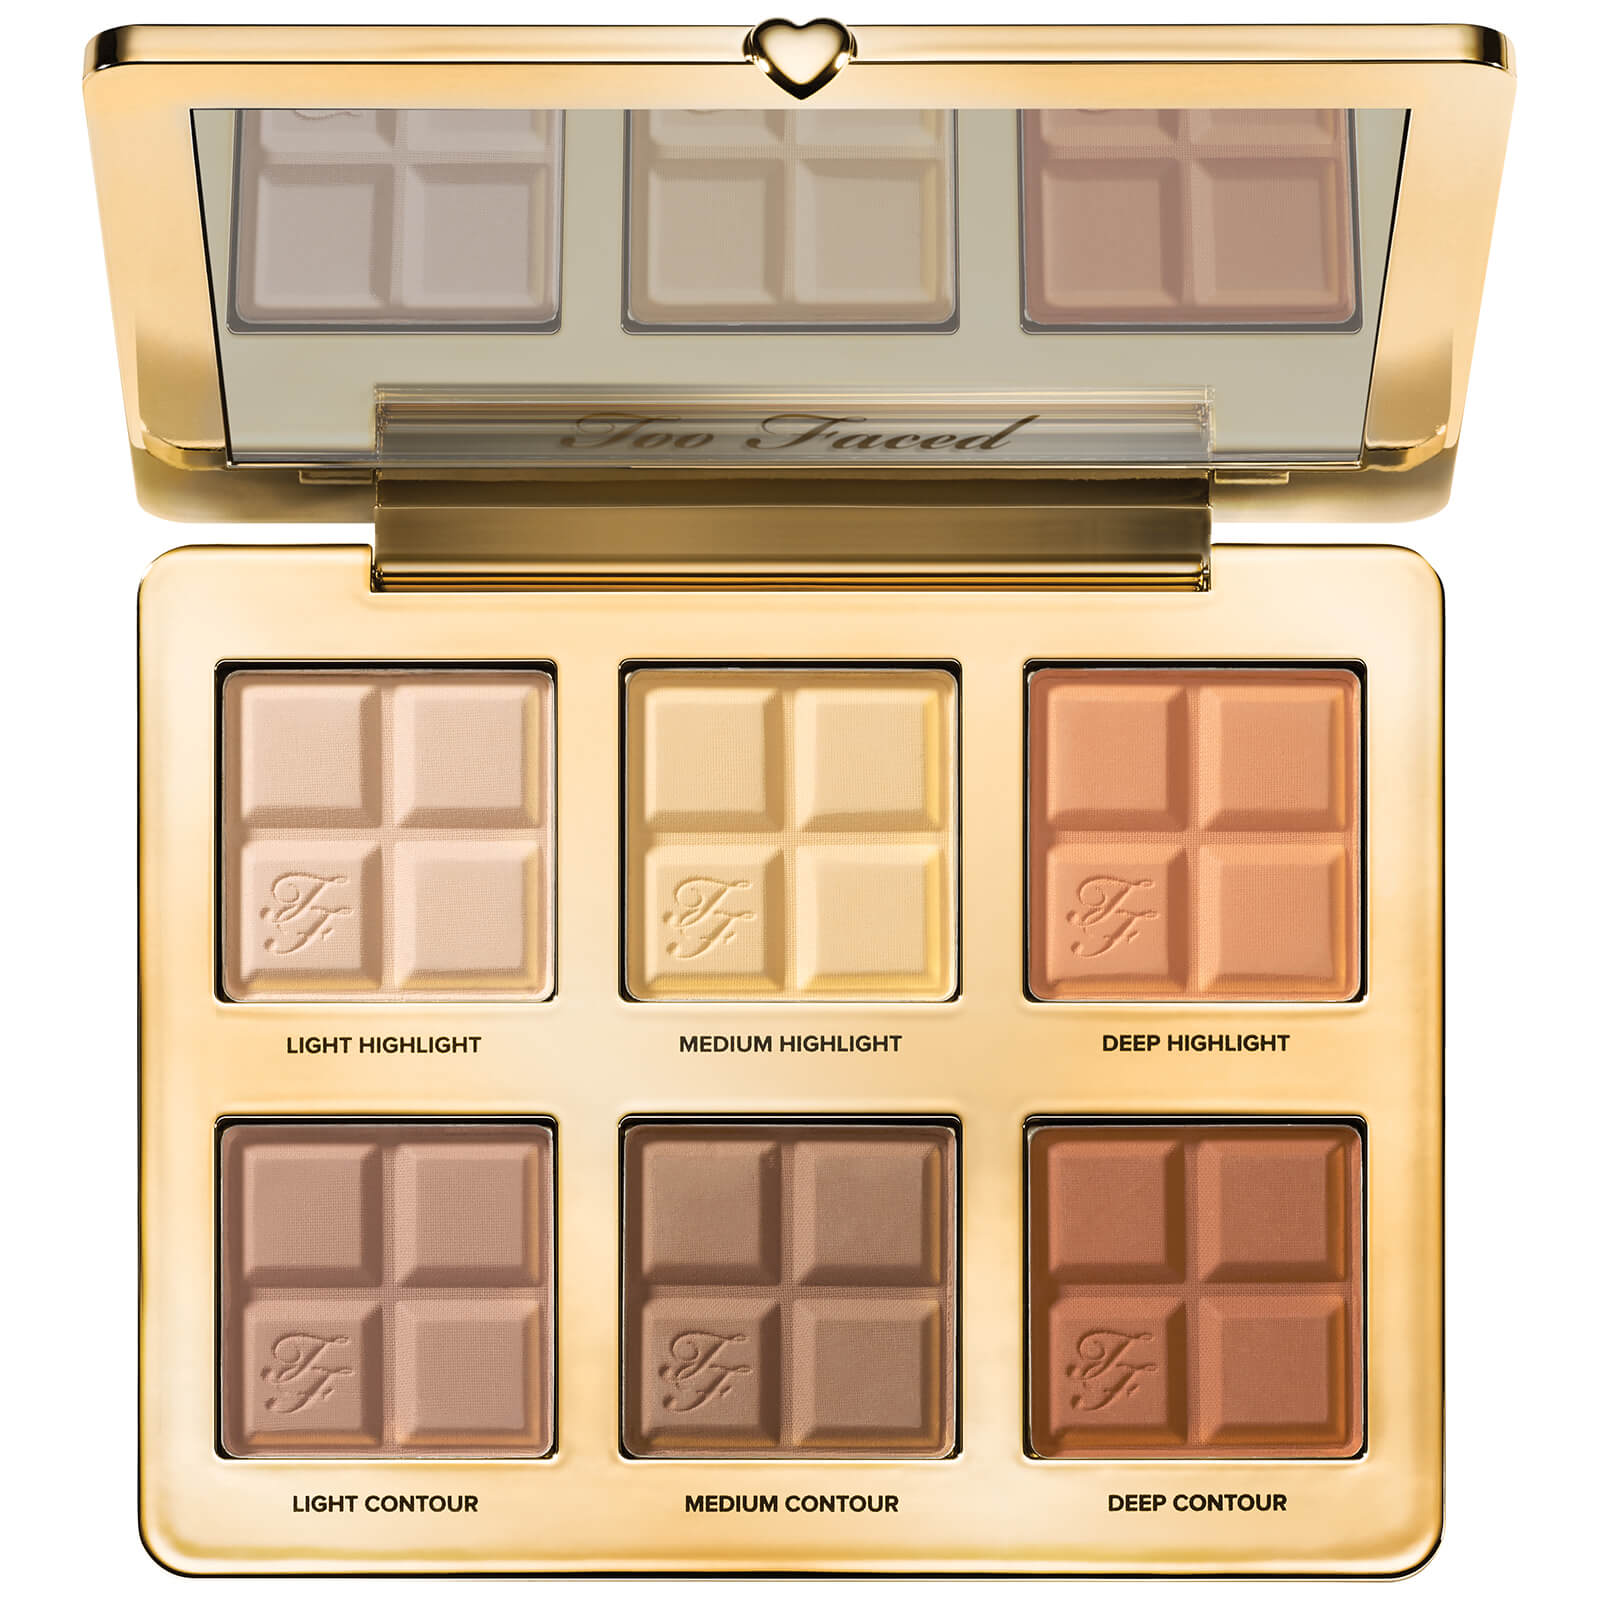 Too Faced Cocoa Contour Cocoa-Infused Contouring and Highlighting Palette 28.5g